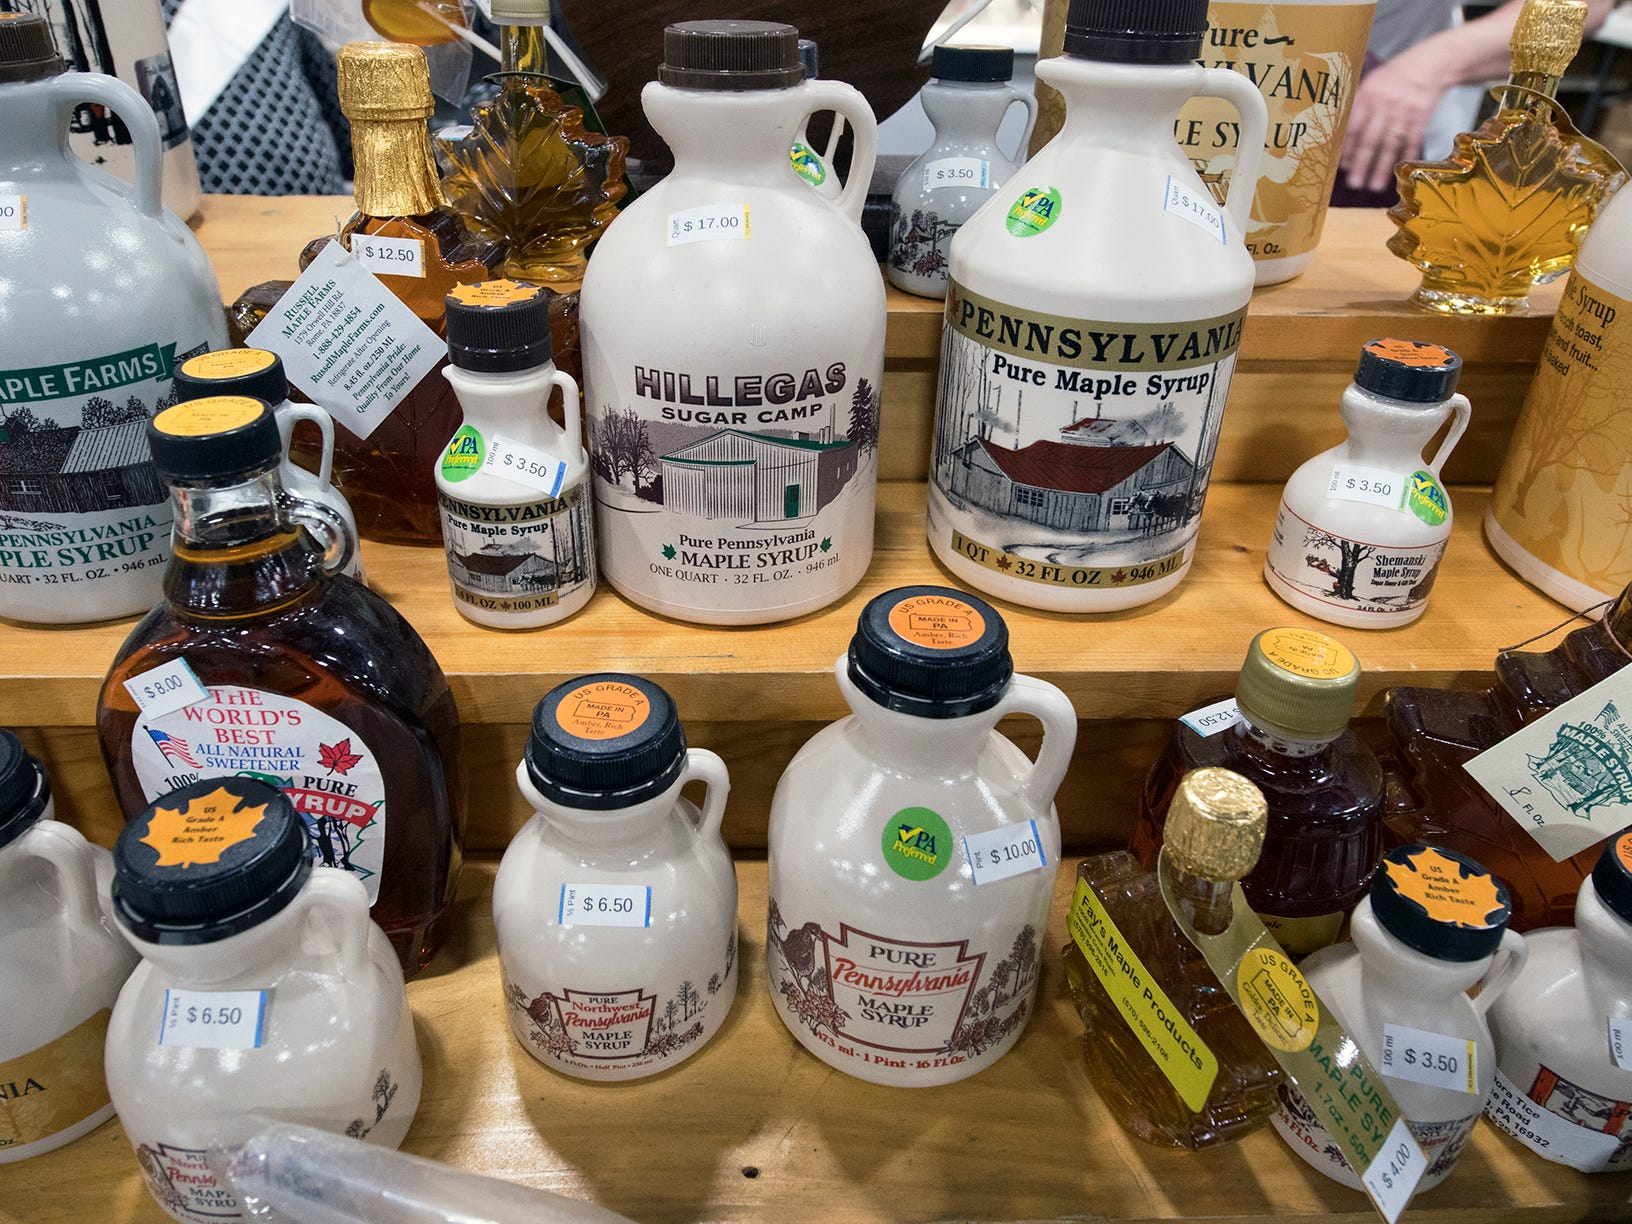 Pennsylvania maple syrup on display at the food court during The 103rd Pennsylvania Farm Show in Harrisburg Sunday January 6, 2019.